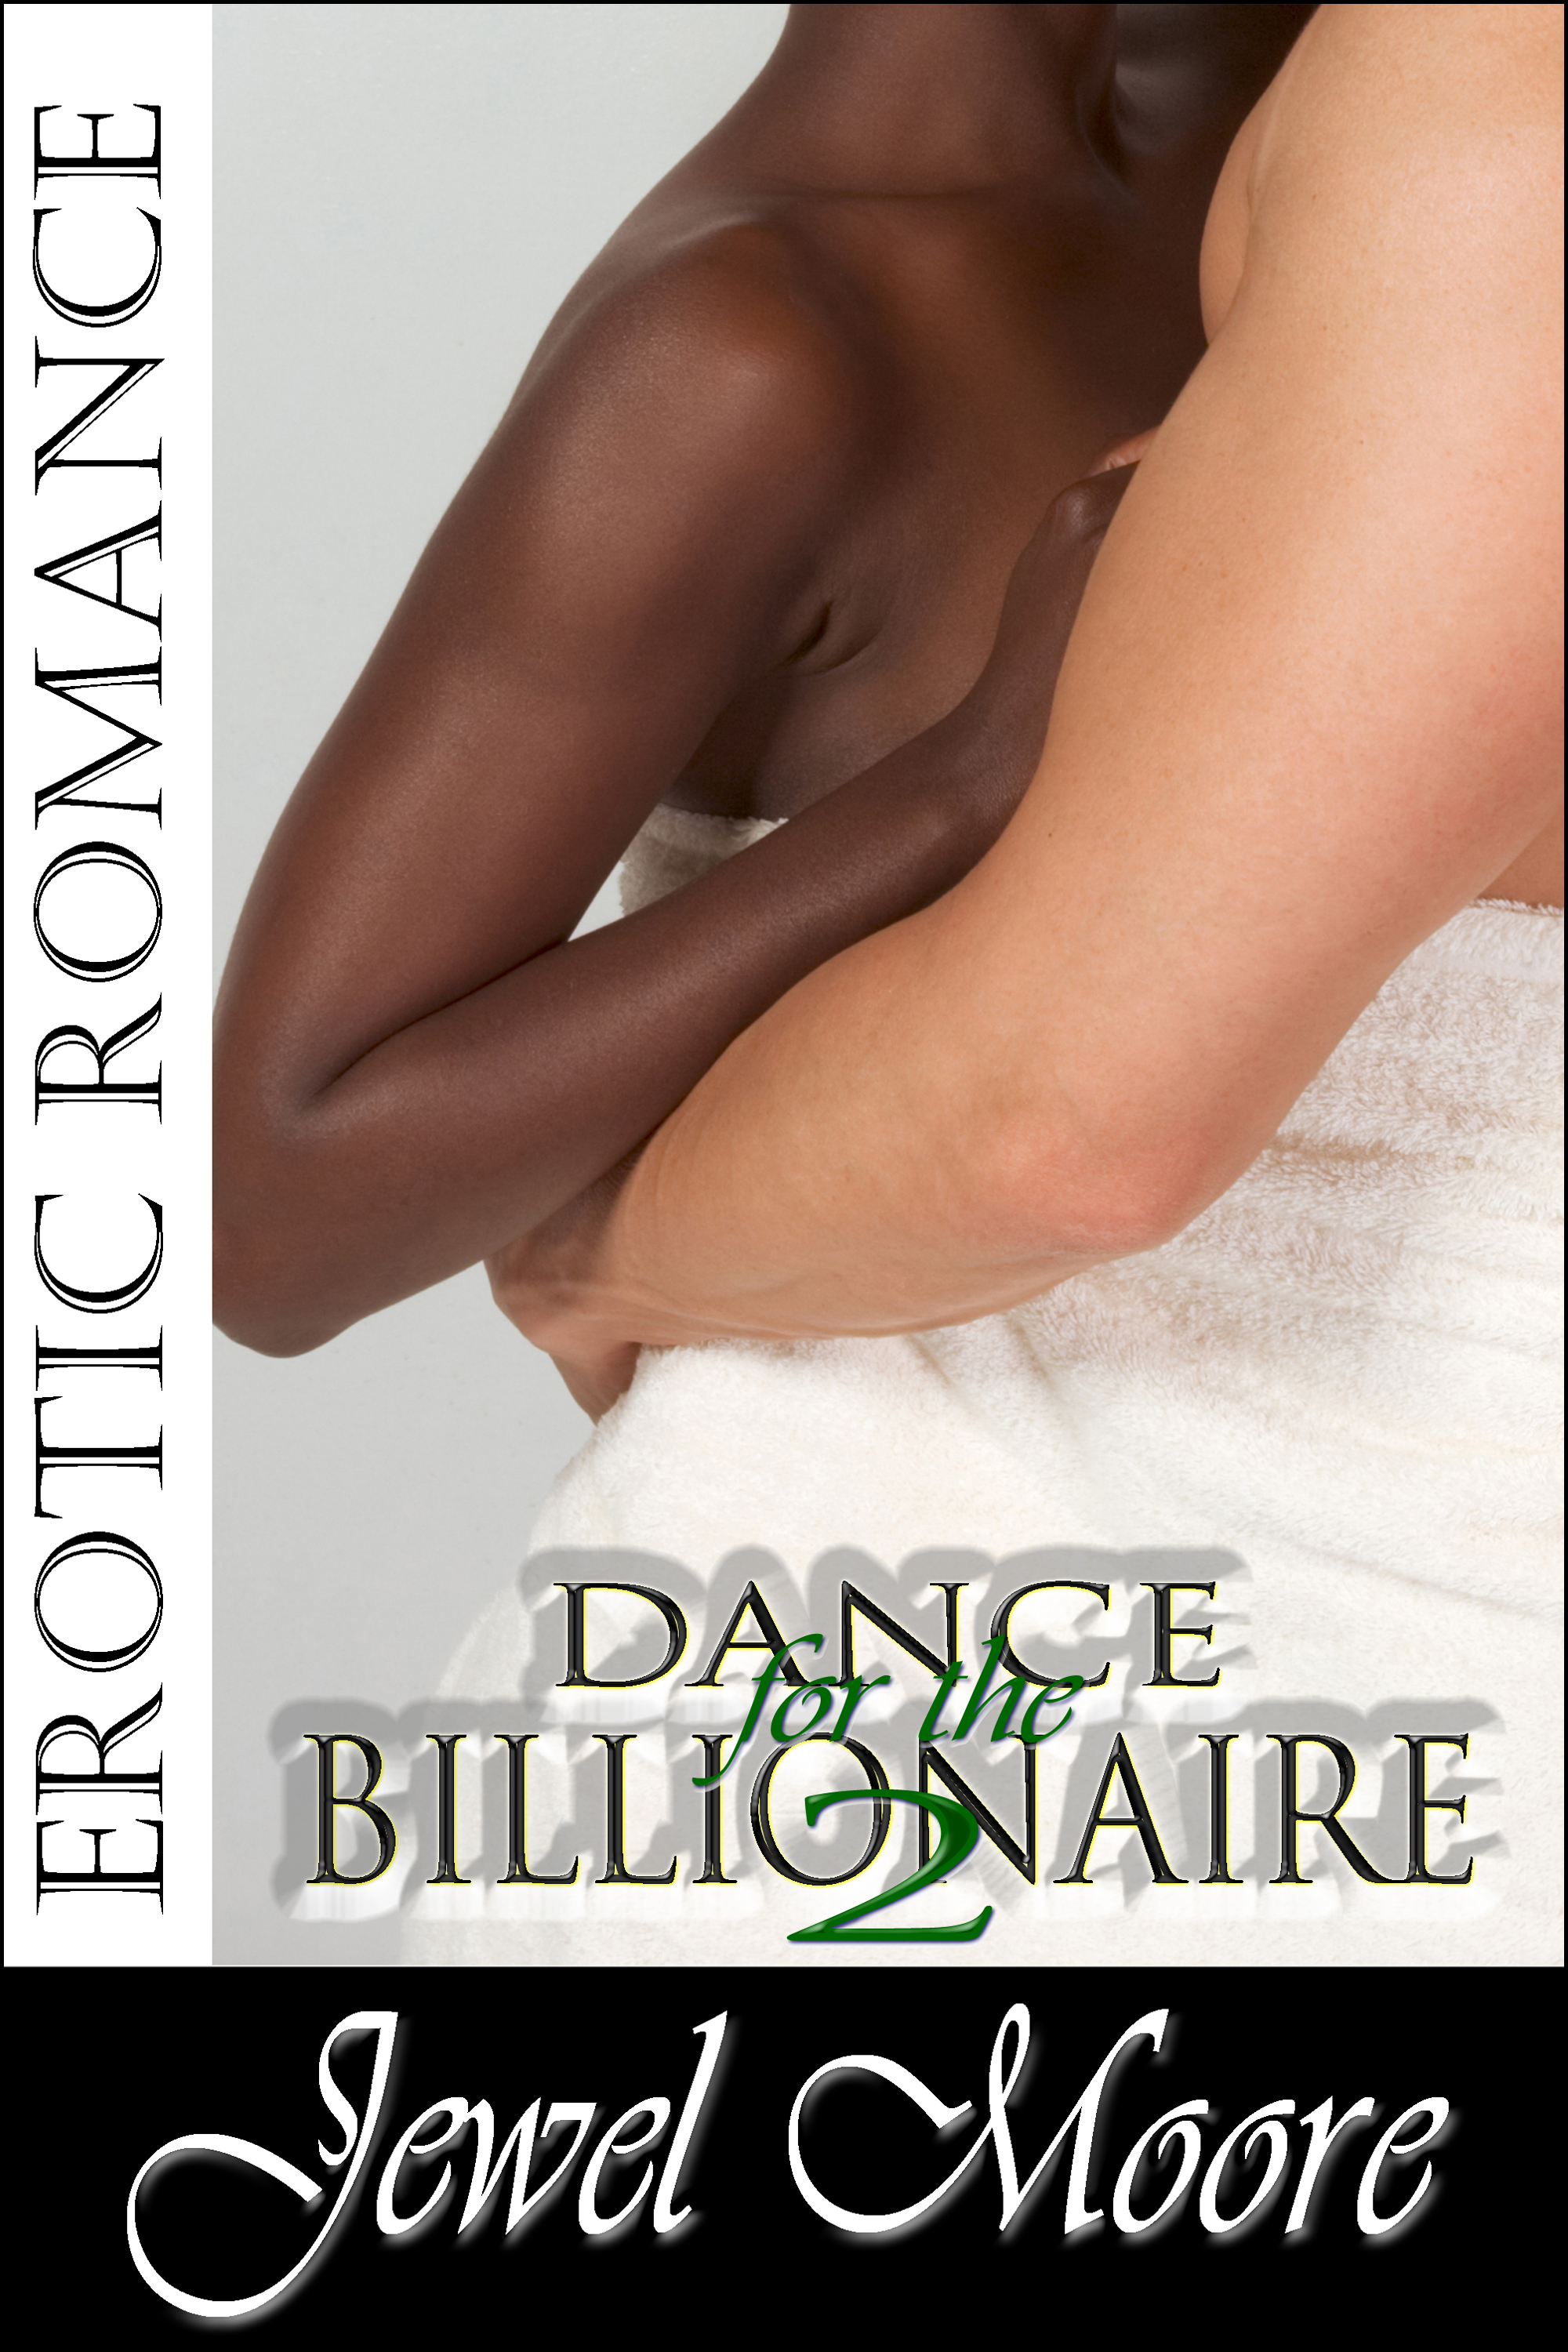 billionaire escort interracial cuckold